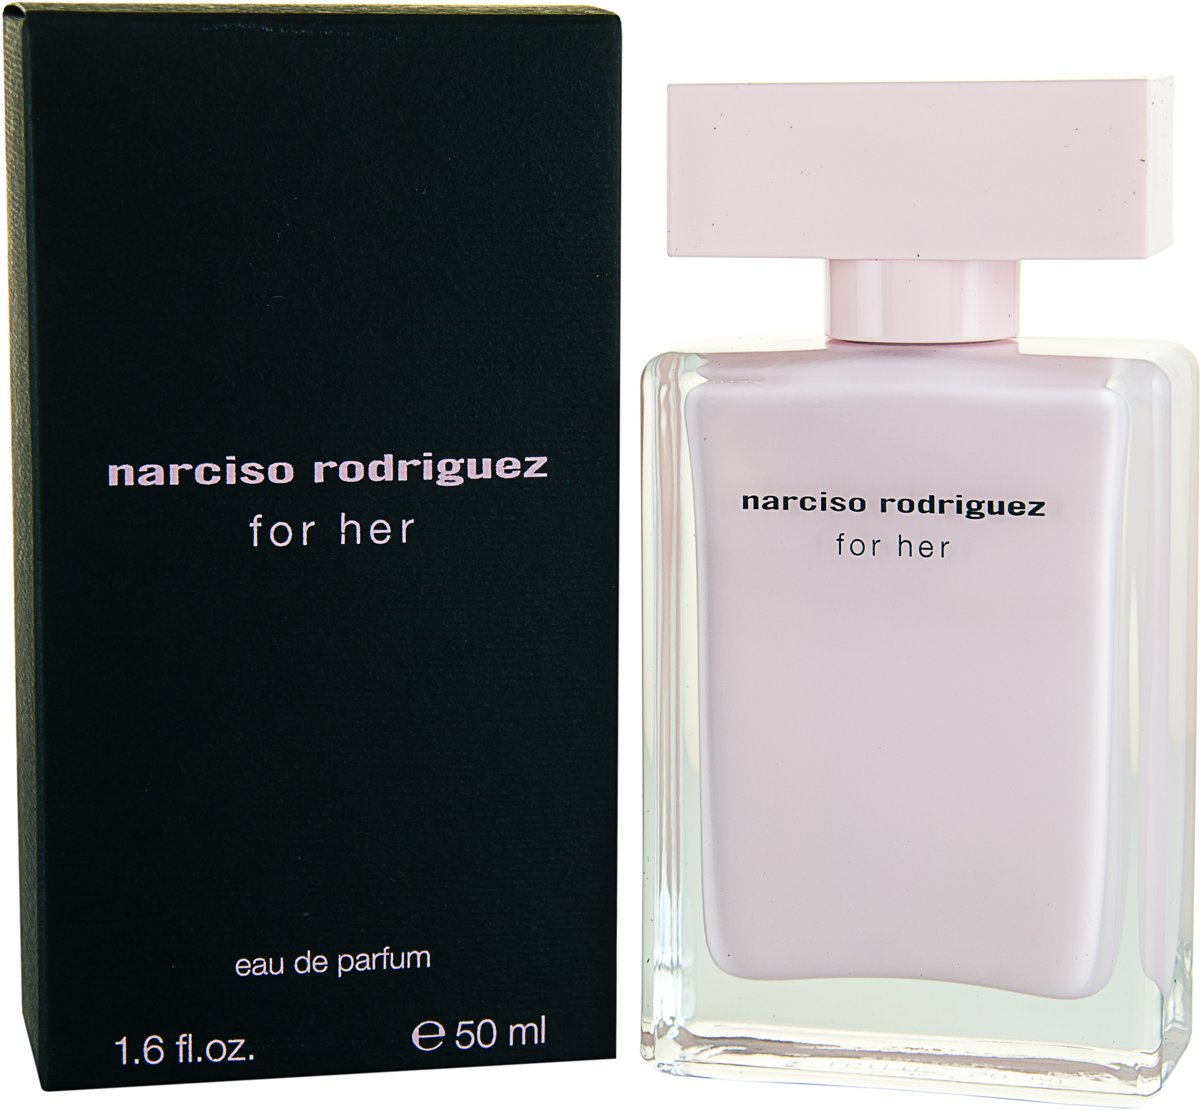 Narciso Rodriguez - Musc for her Oil Parfum 50ml